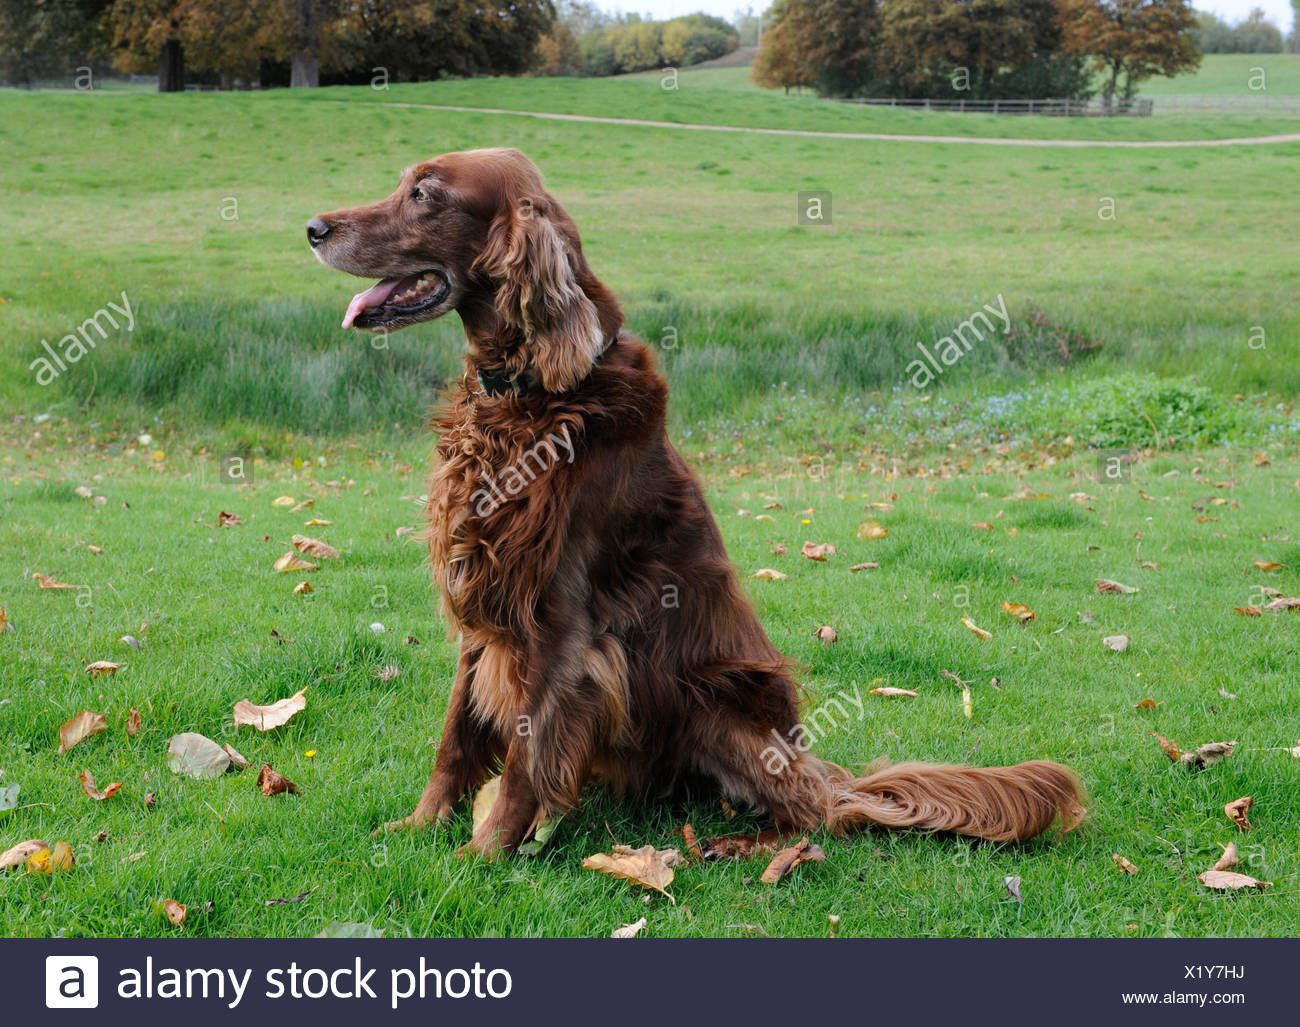 An obedient red setter patiently waiting for instructons - Stock Image